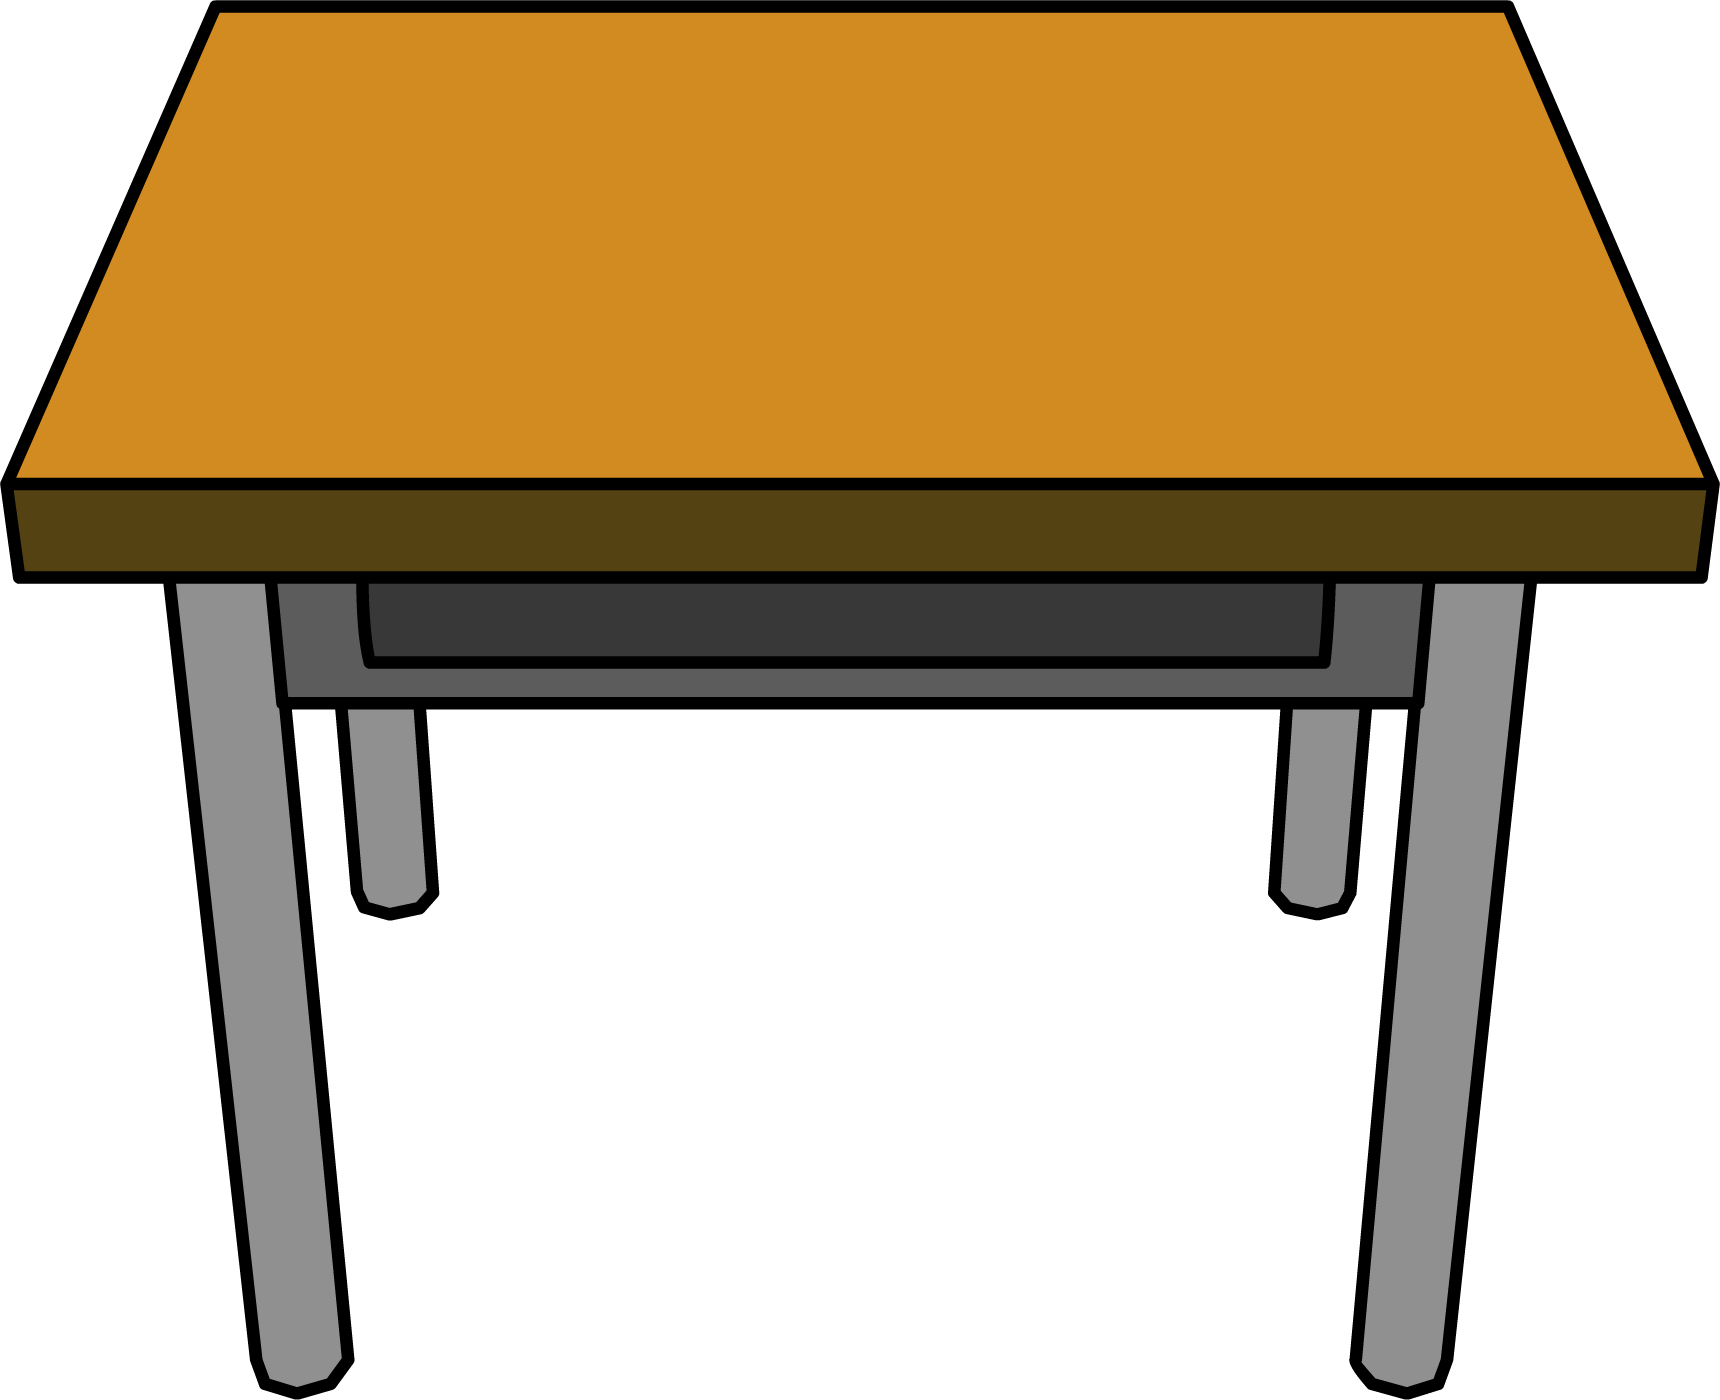 Classroom Furniture Dwg ~ Classroom desk club penguin wiki fandom powered by wikia